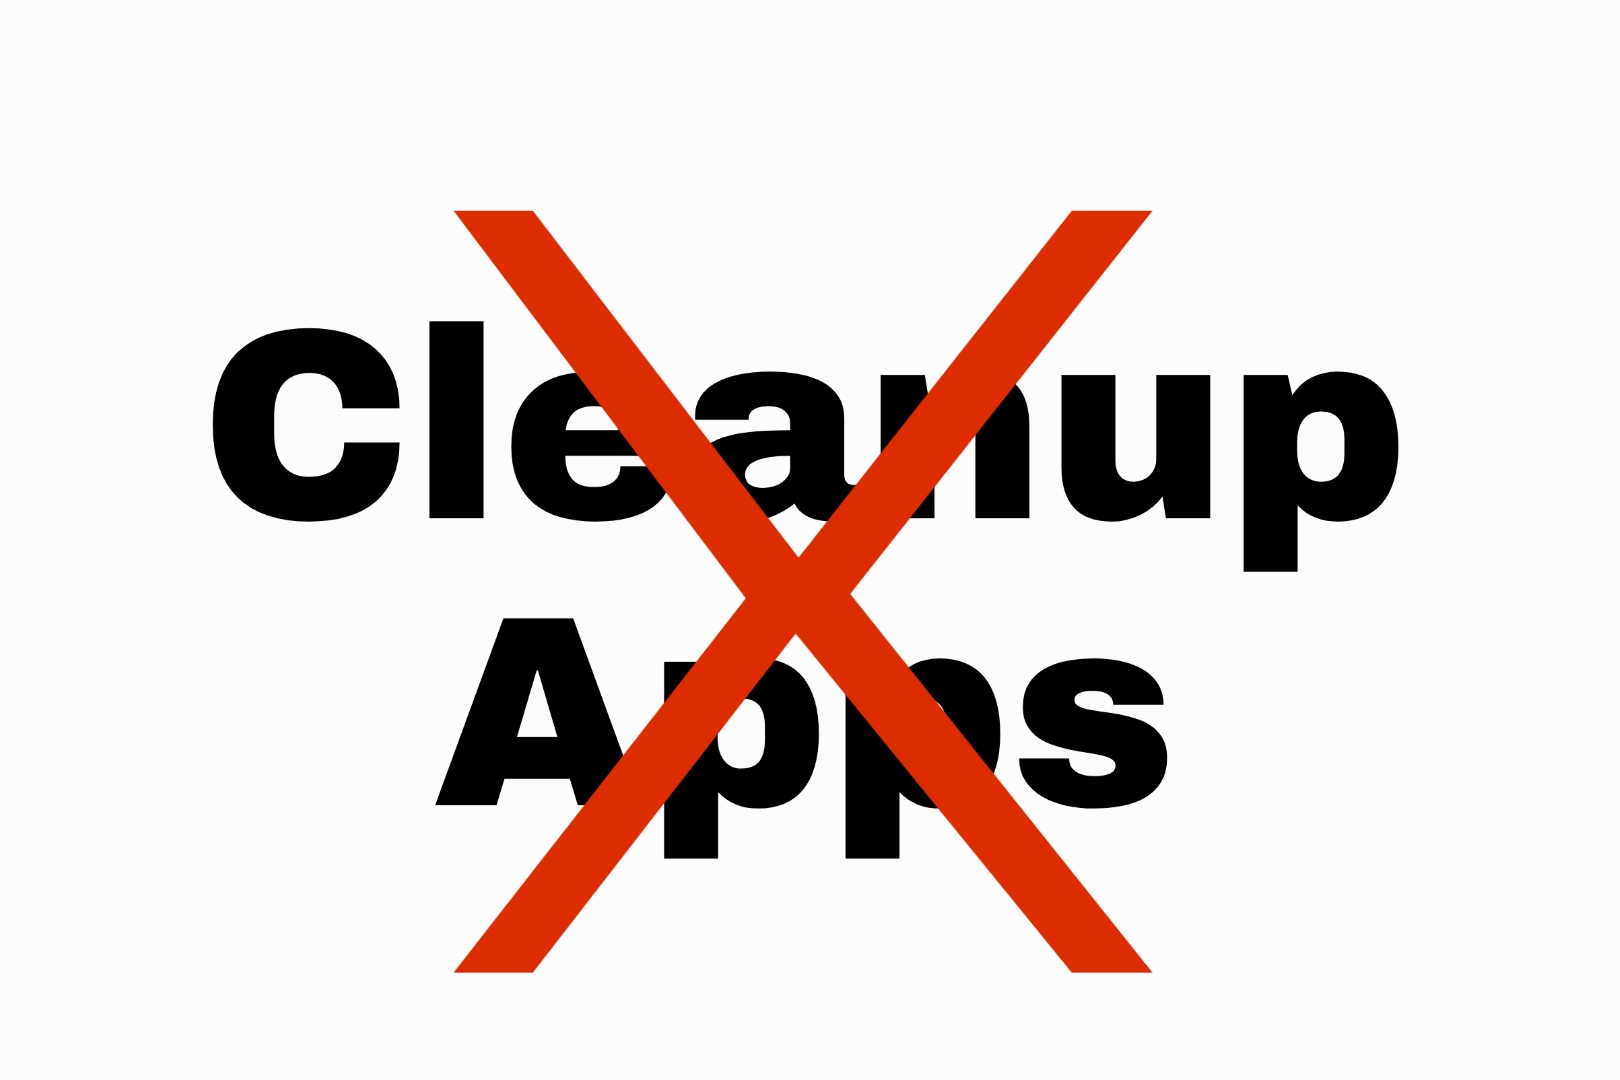 Say no to cleanup apps